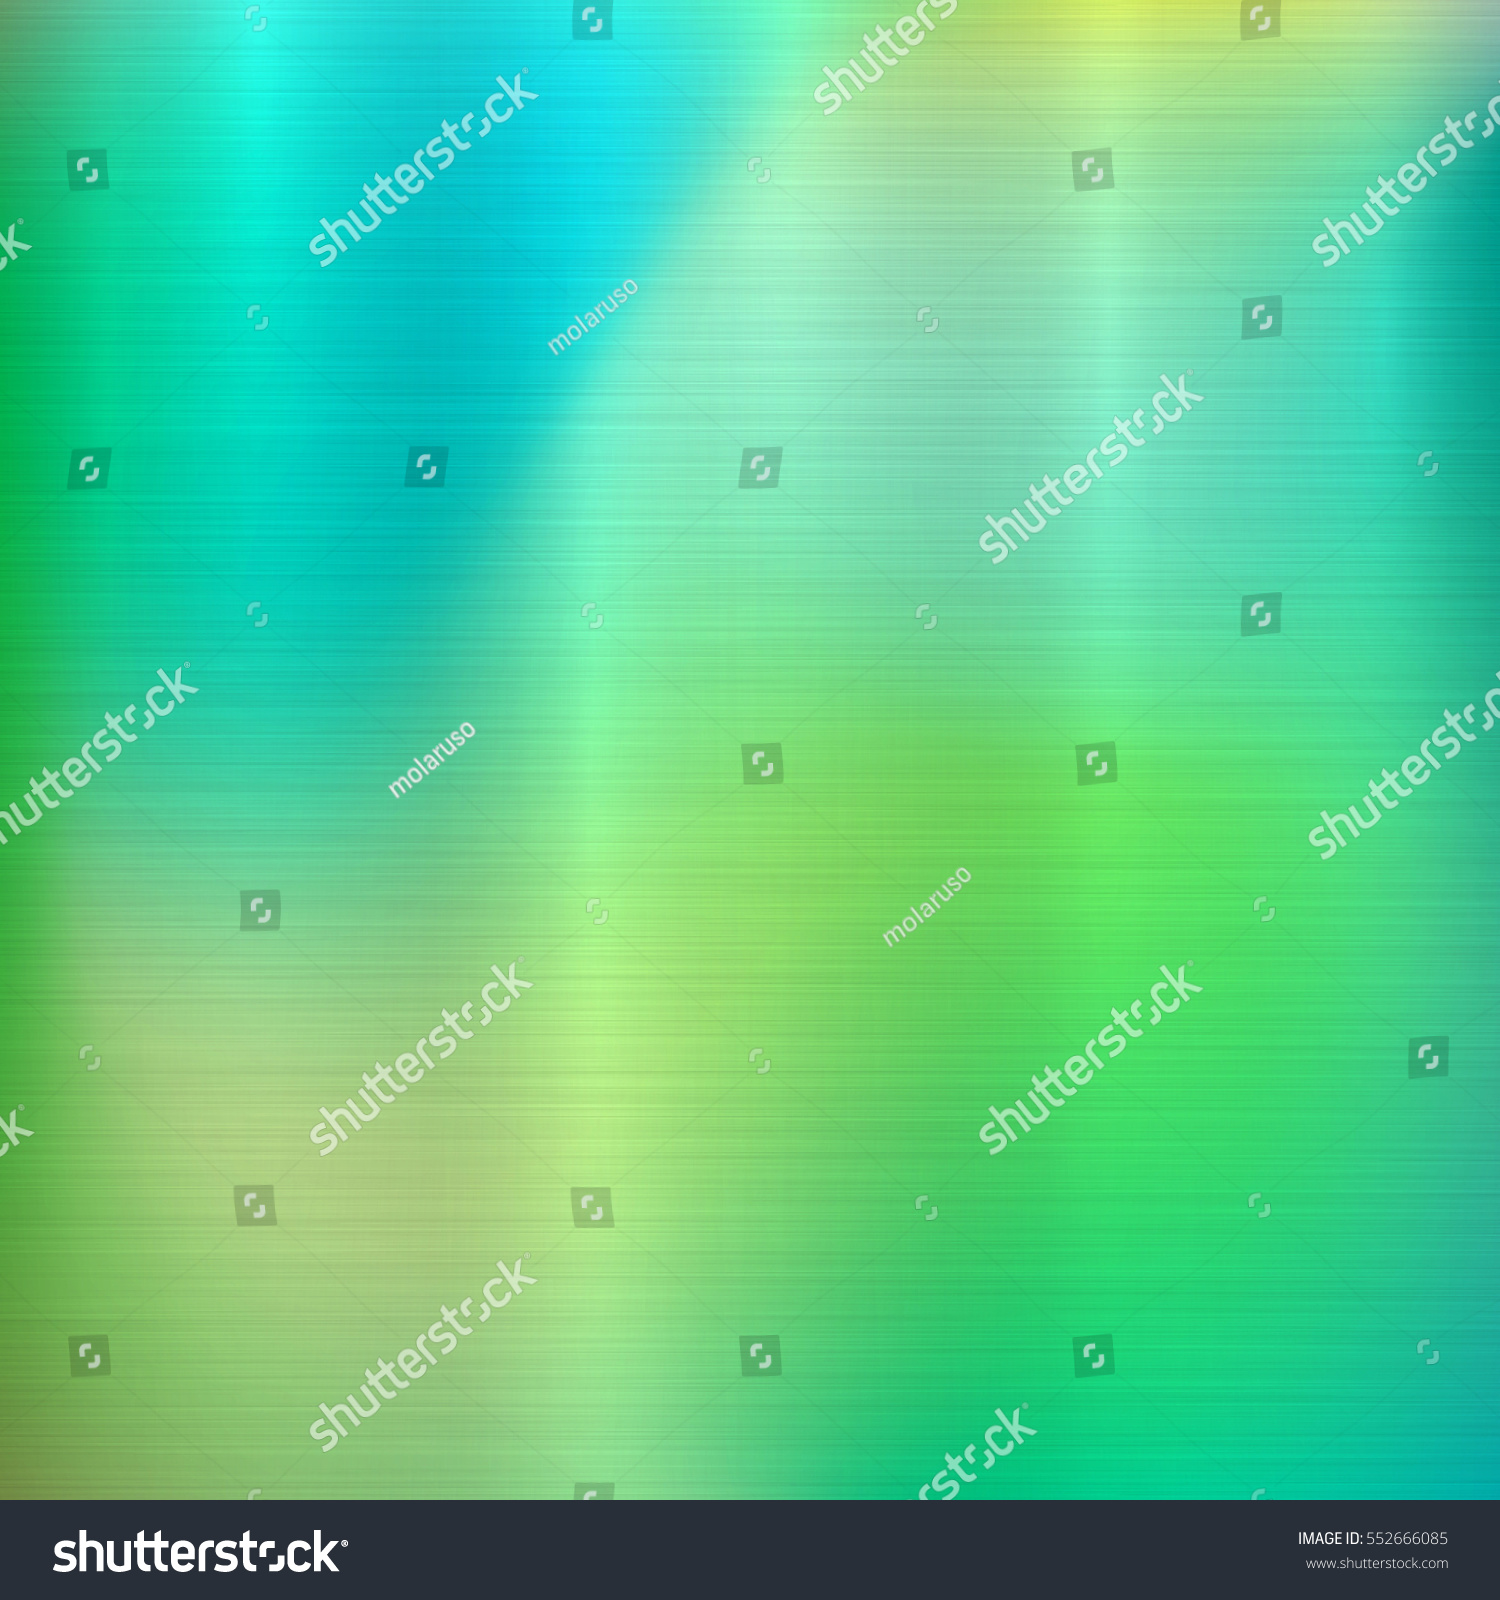 Metal Abstract Green Colorful Gradient Technology Background With Polished,  Brushed Texture, Chrome, Silver